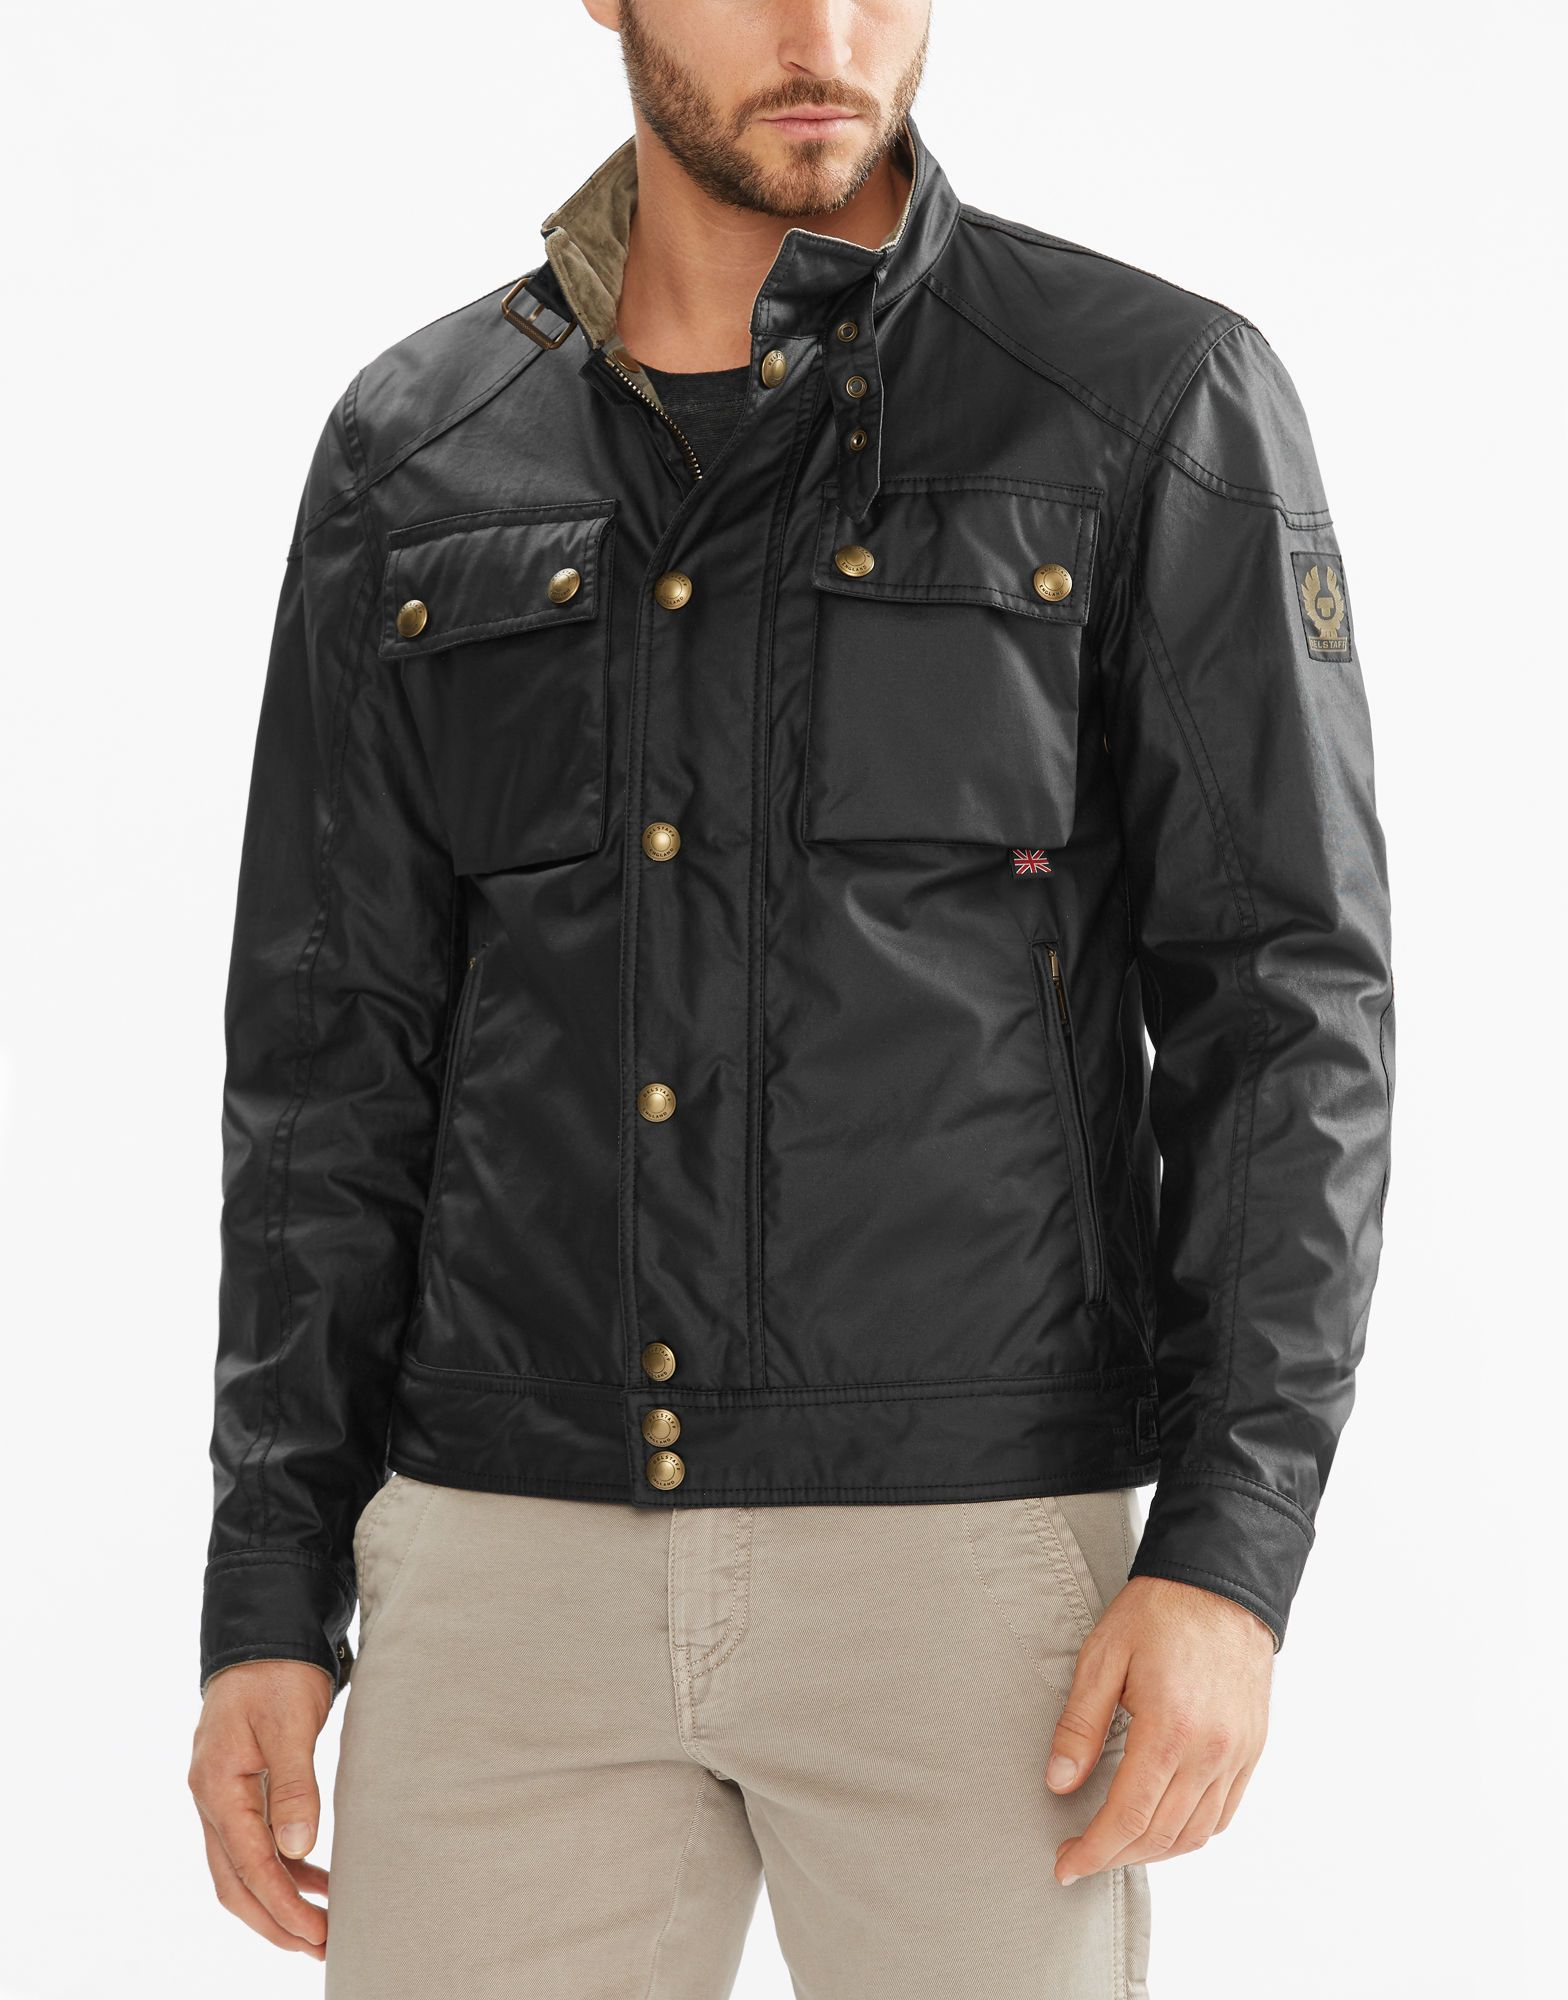 Racemaster Cotton Waxed Jacket Blouson Black Men PXiZuOkwT